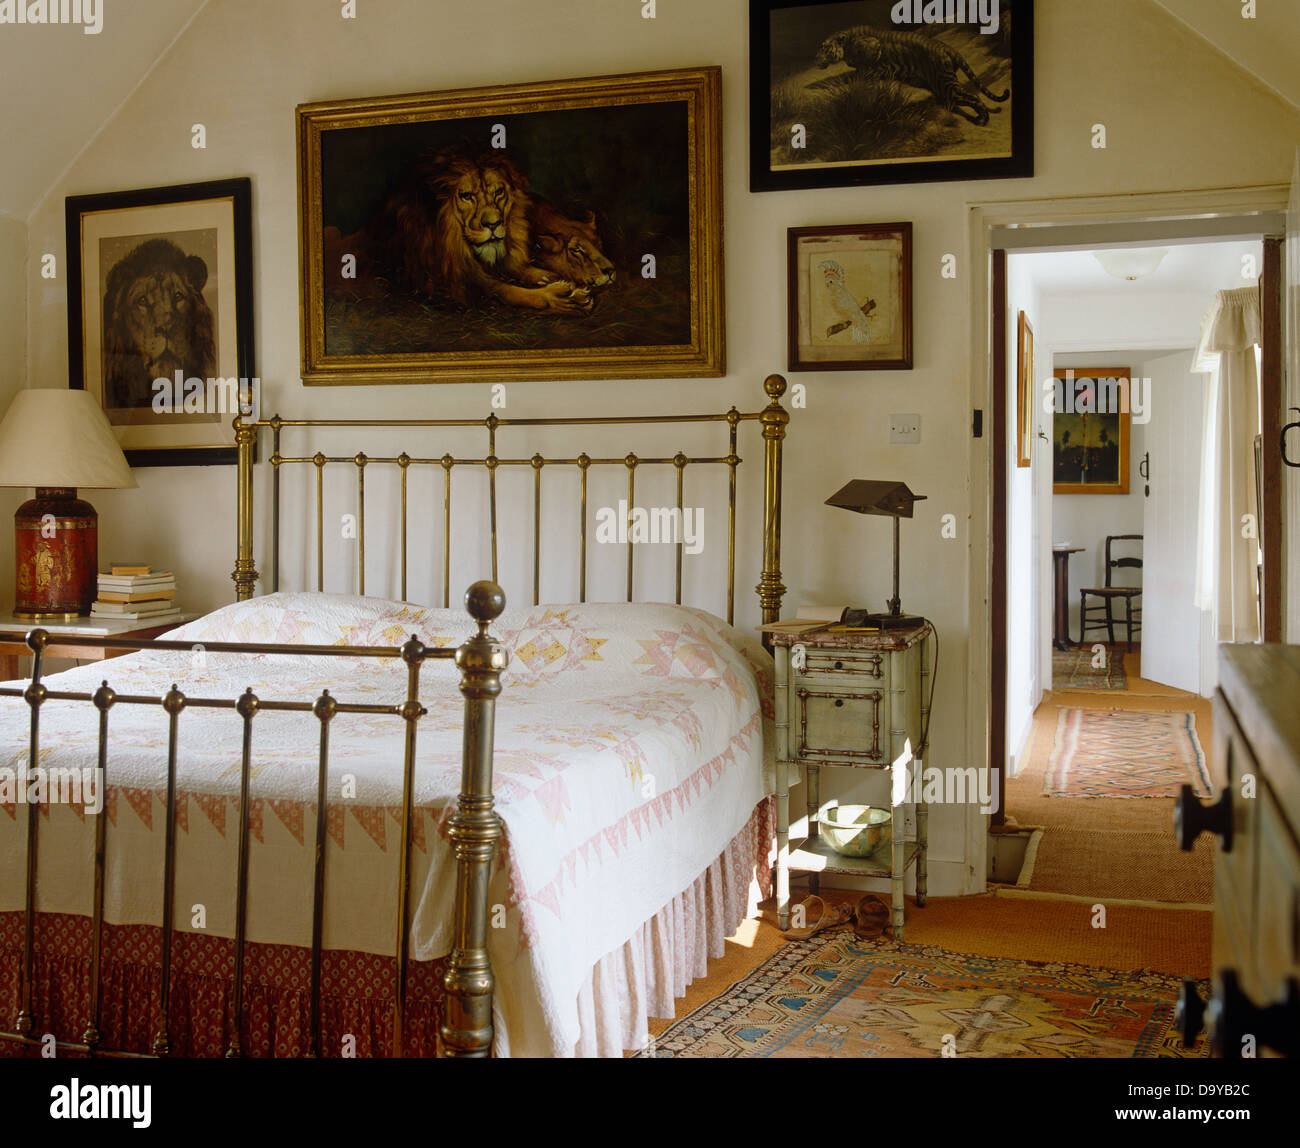 paintings of lions on wall above brass bed with white and pink quilt in country bedroom